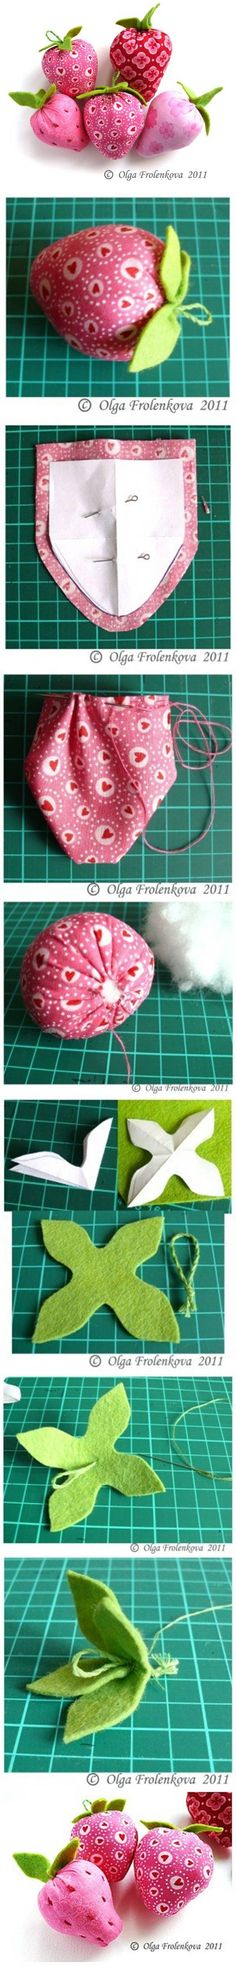 DIY Sew Fabric Strawberry via usefuldiy.com